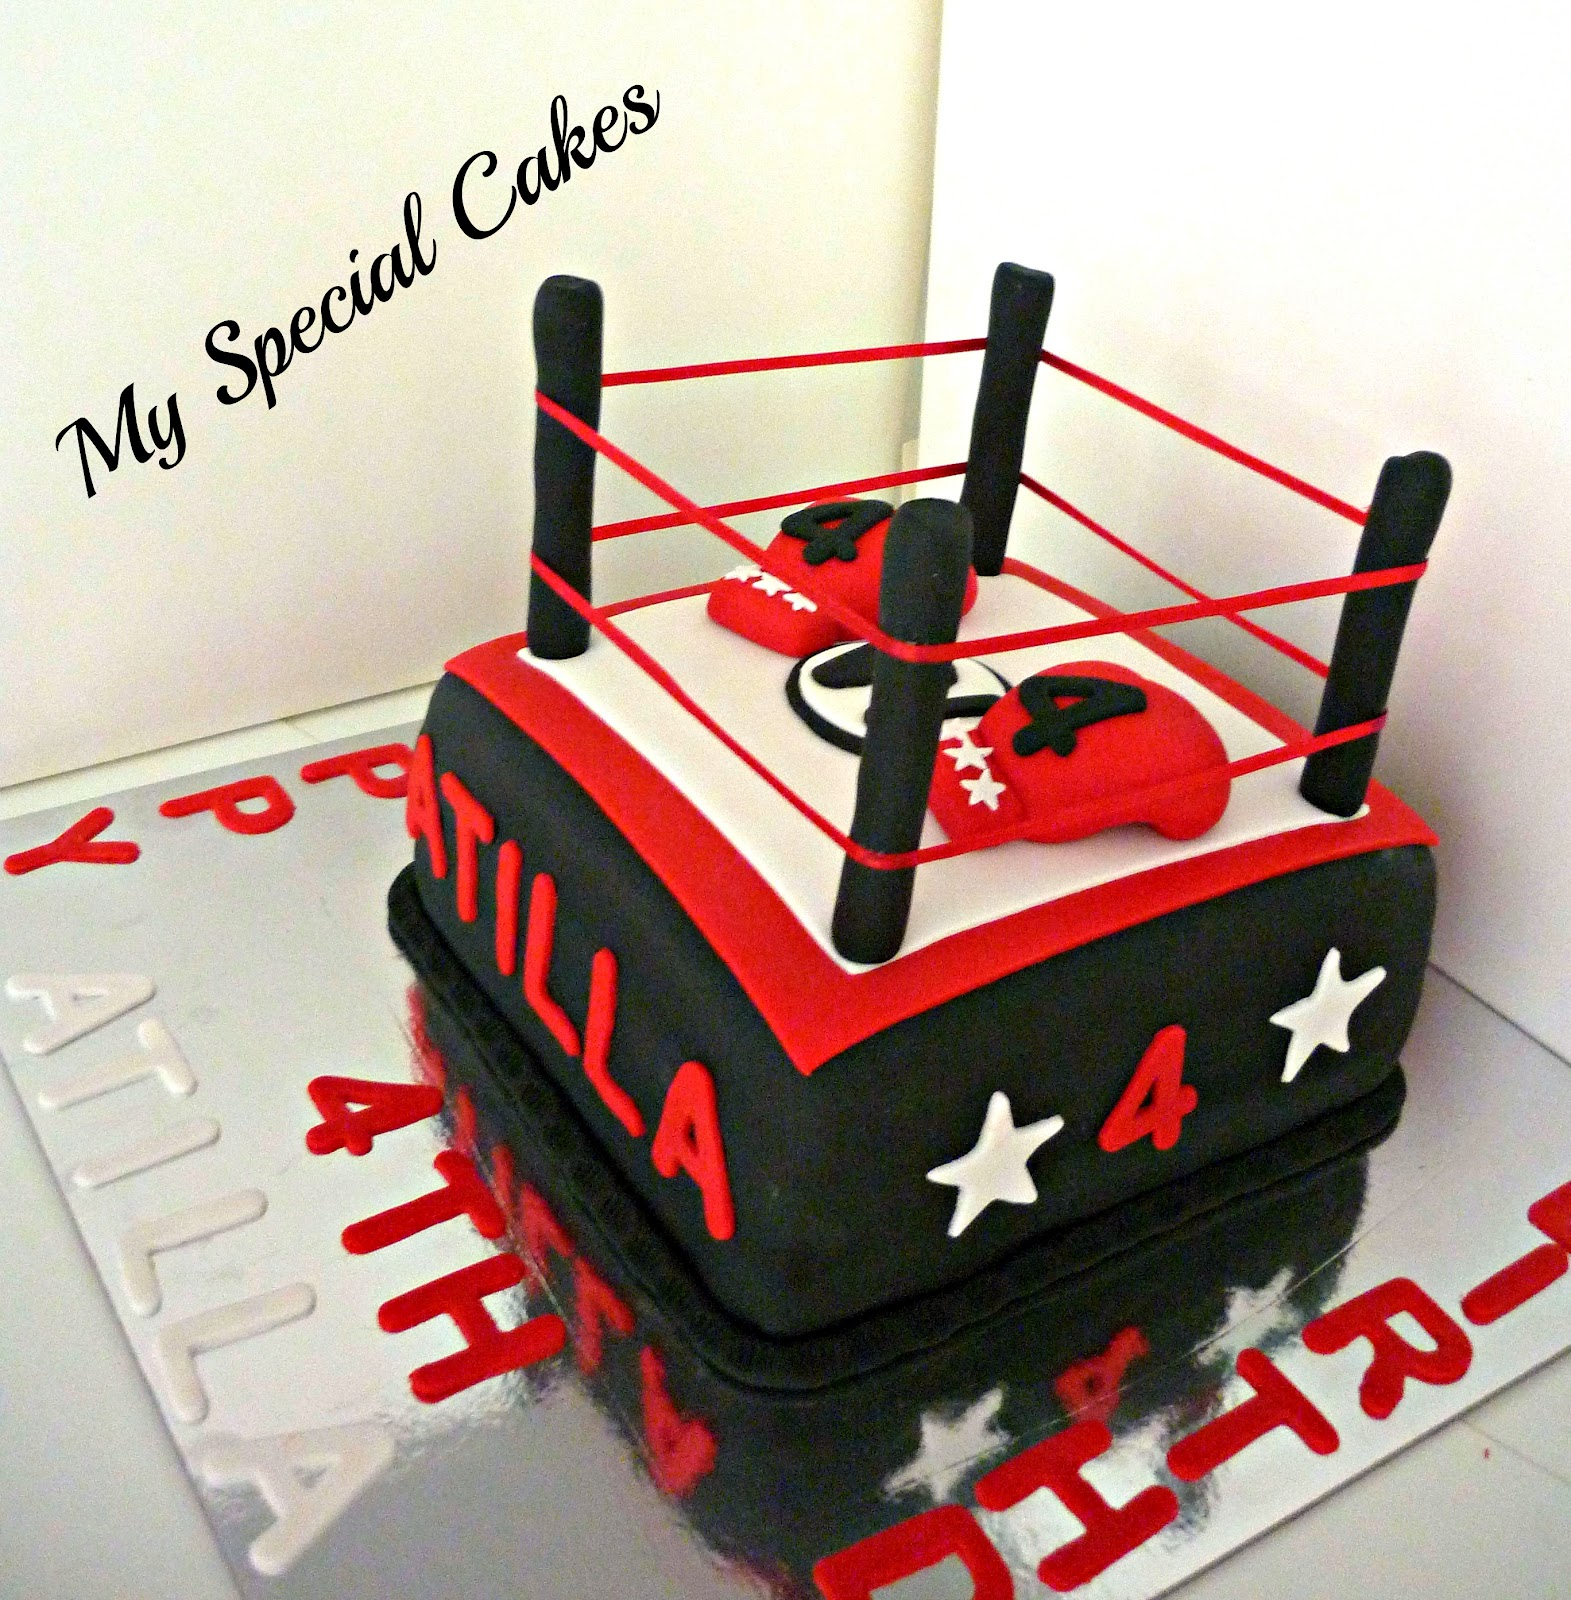 My Special Cakes Boxing Cake